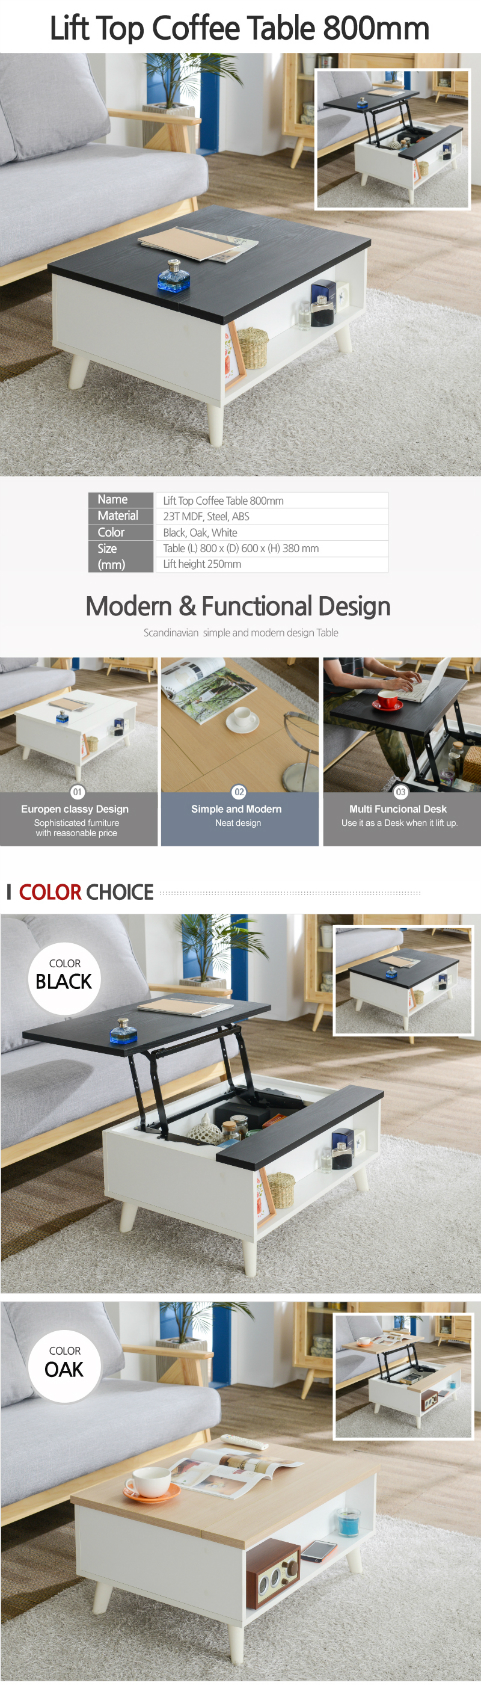 Blmg Blooming Home Lift Top Coffee Table 800cm 1200cm Lift Table Lift Top Table Laptop T